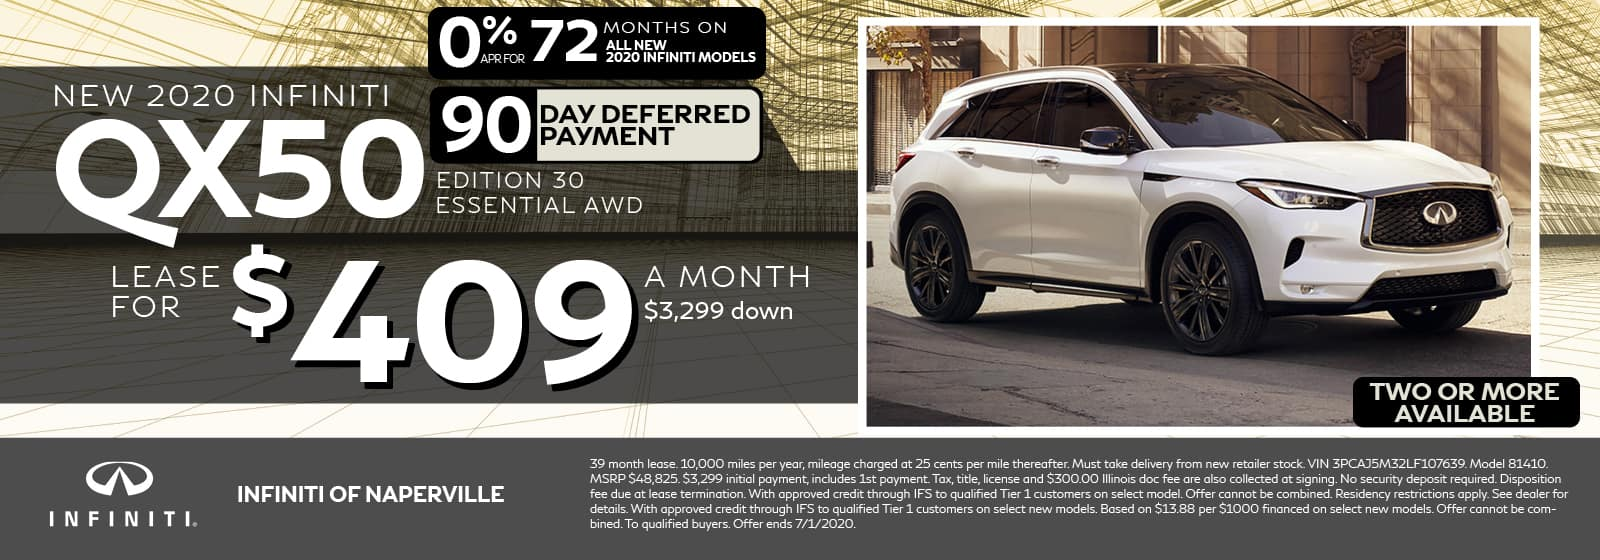 QX50 Lease Offer